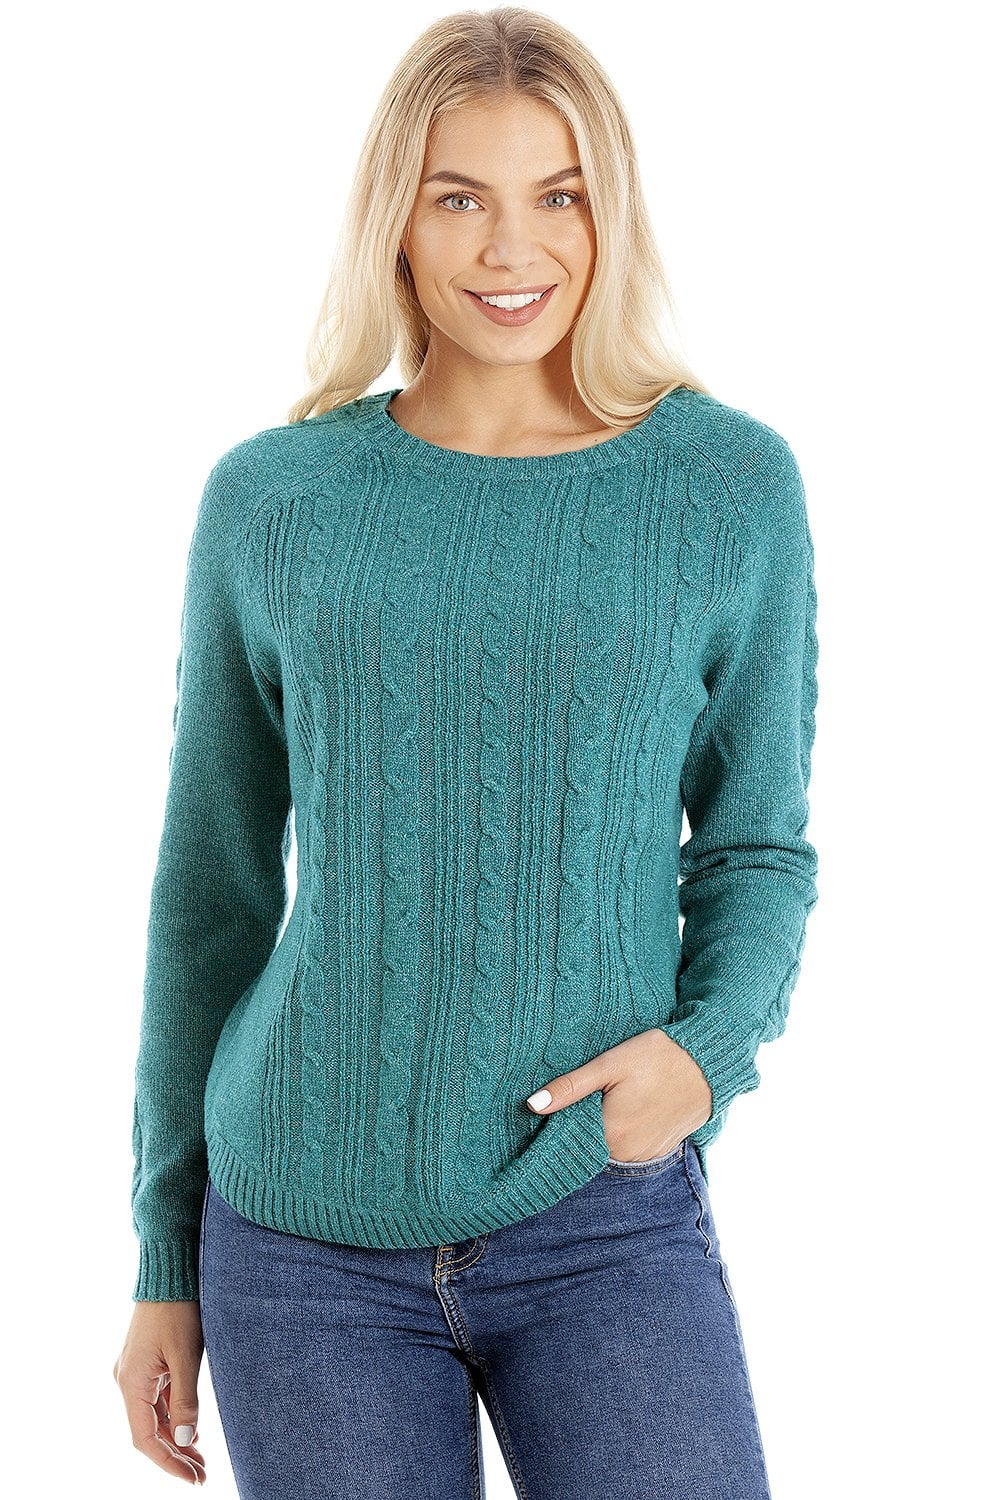 907cab2e4cd Womens Ex Highstreet Green Cable Knit Jumper